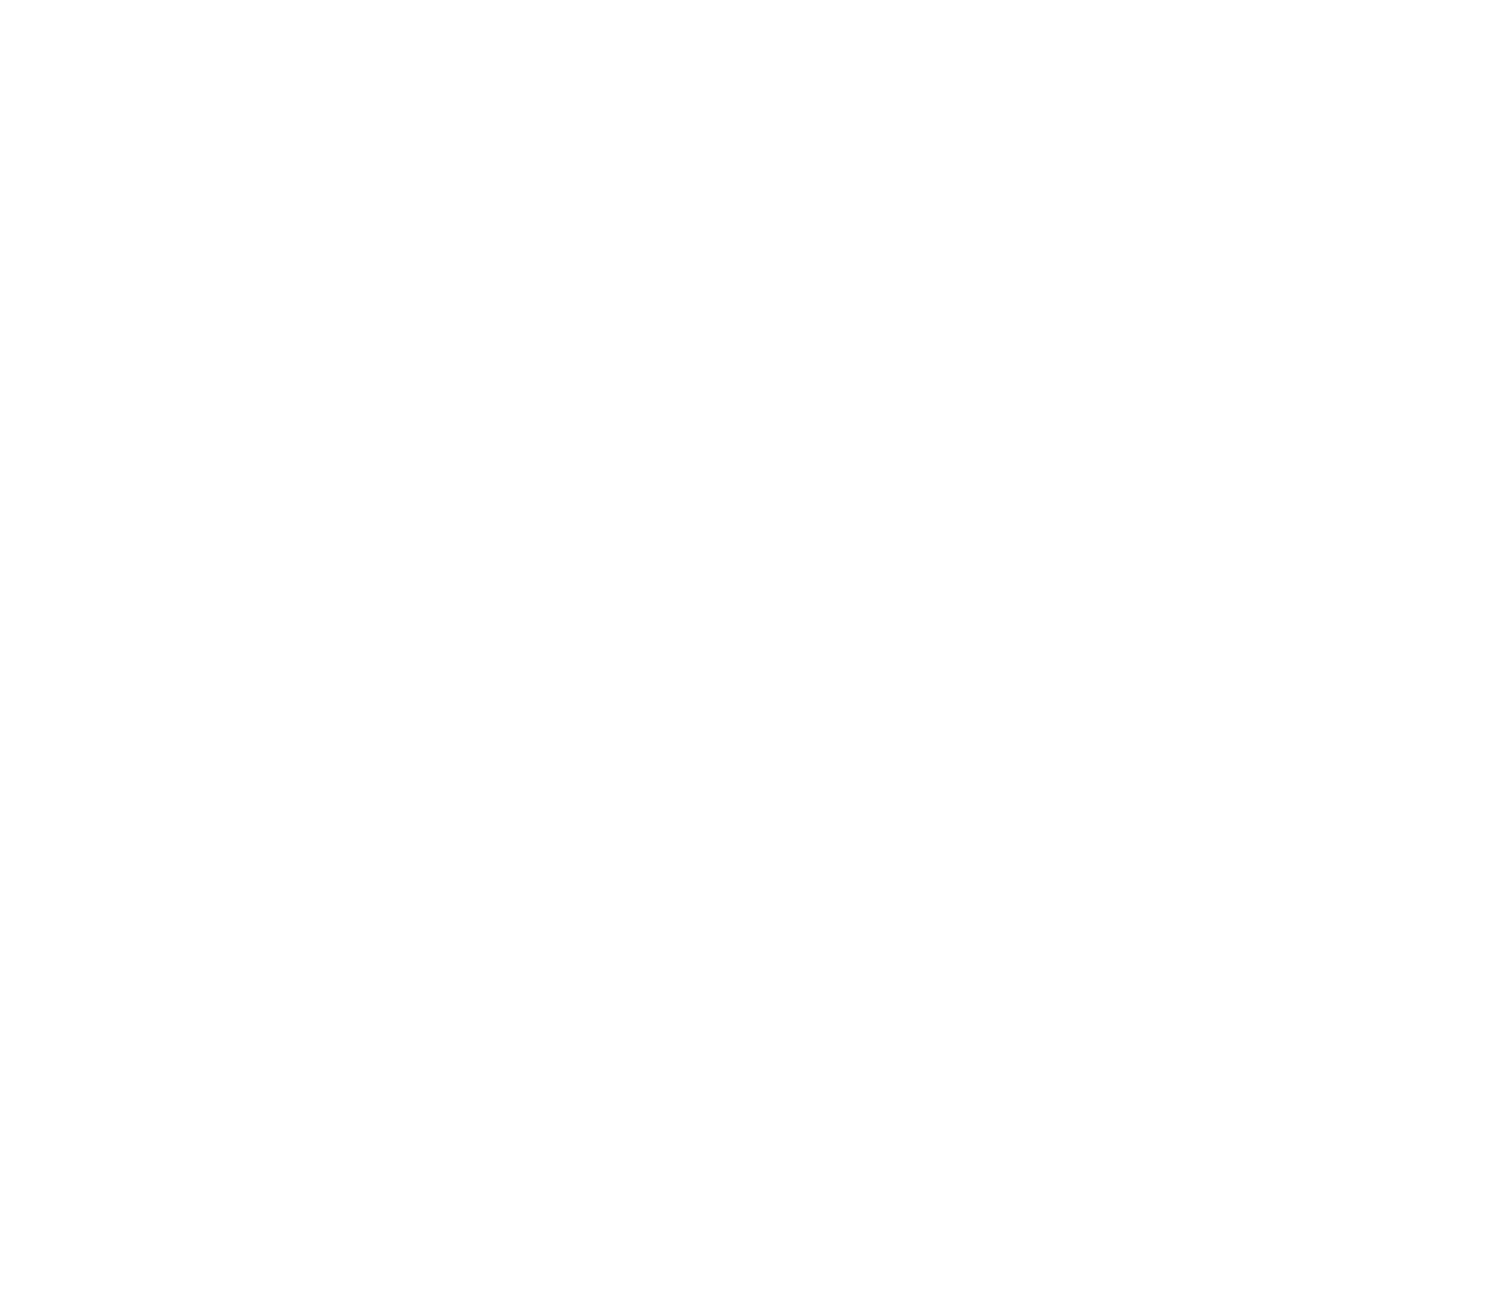 Queen City Growlers